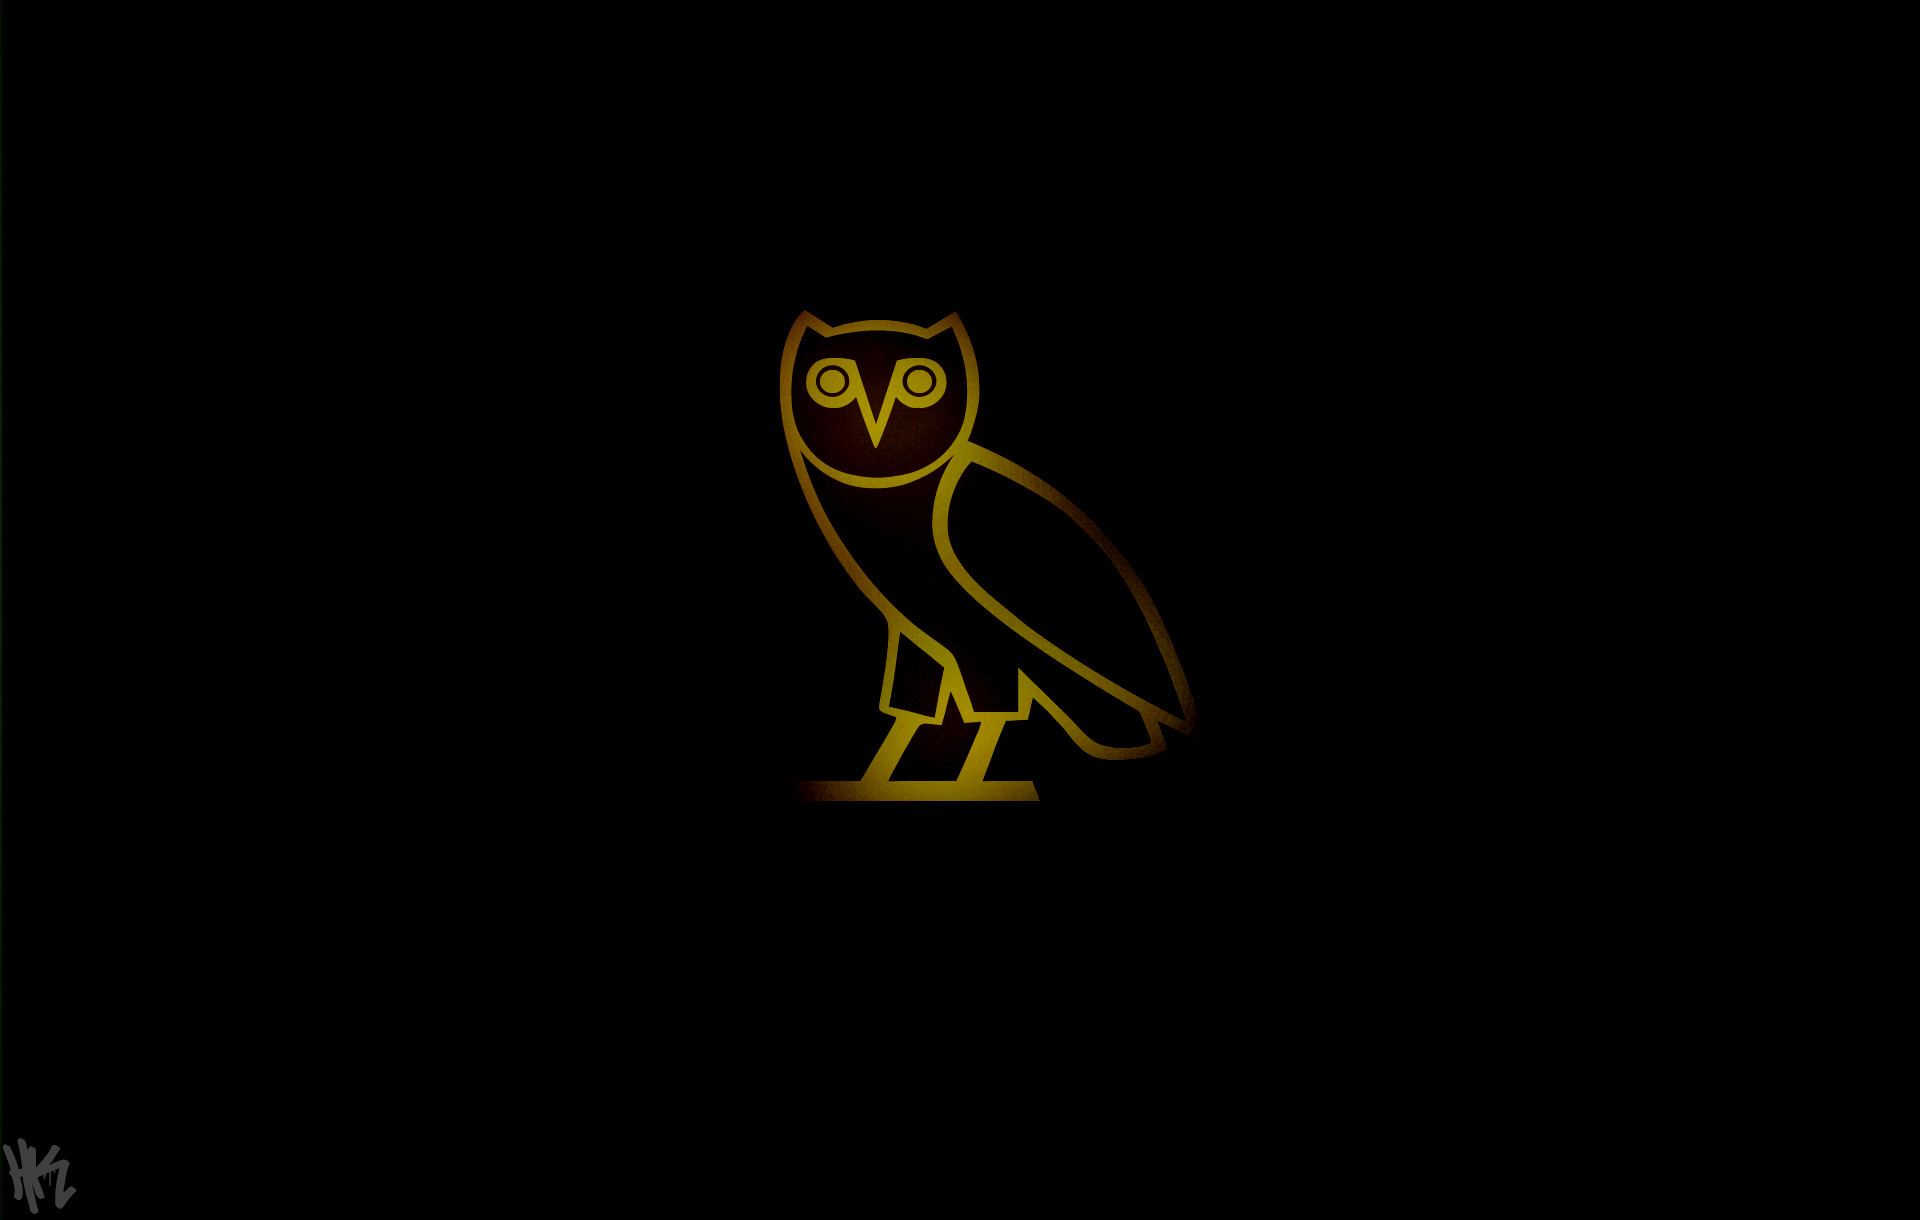 Ovo iPhone 6 Wallpaper (81+ images)